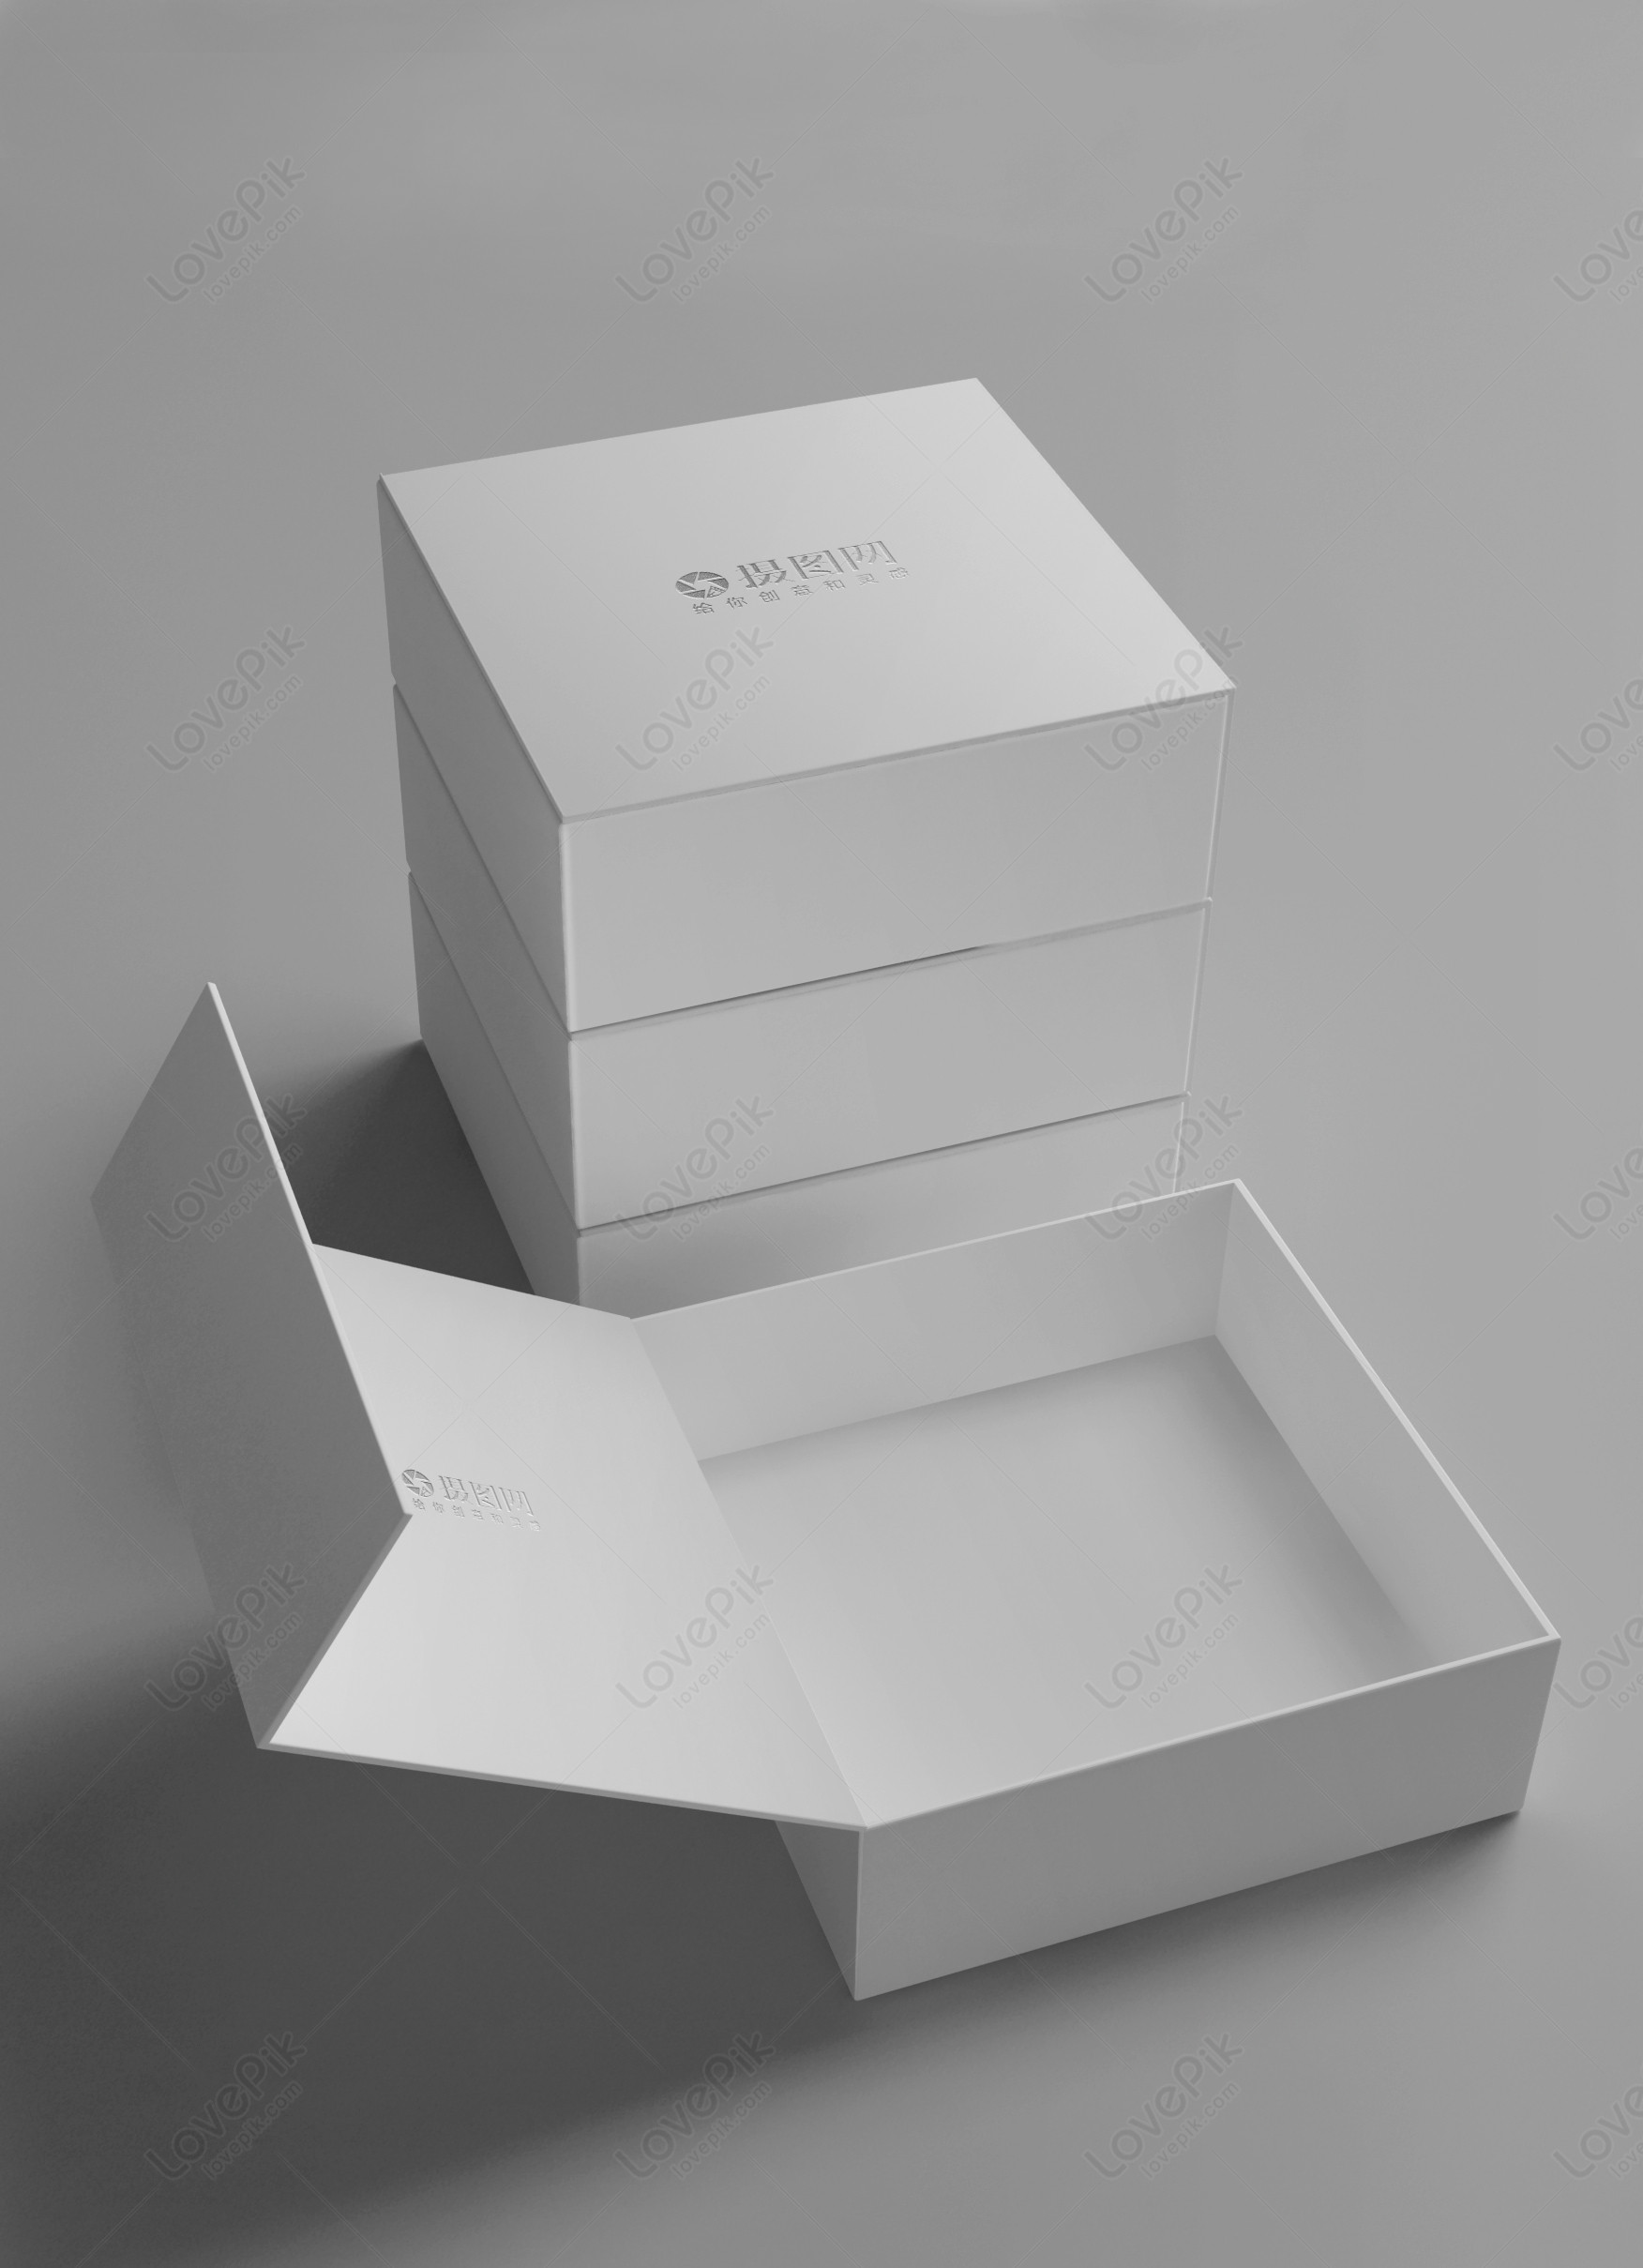 White gift box packaging mockup template image_picture free download 400837068_lovepikcom